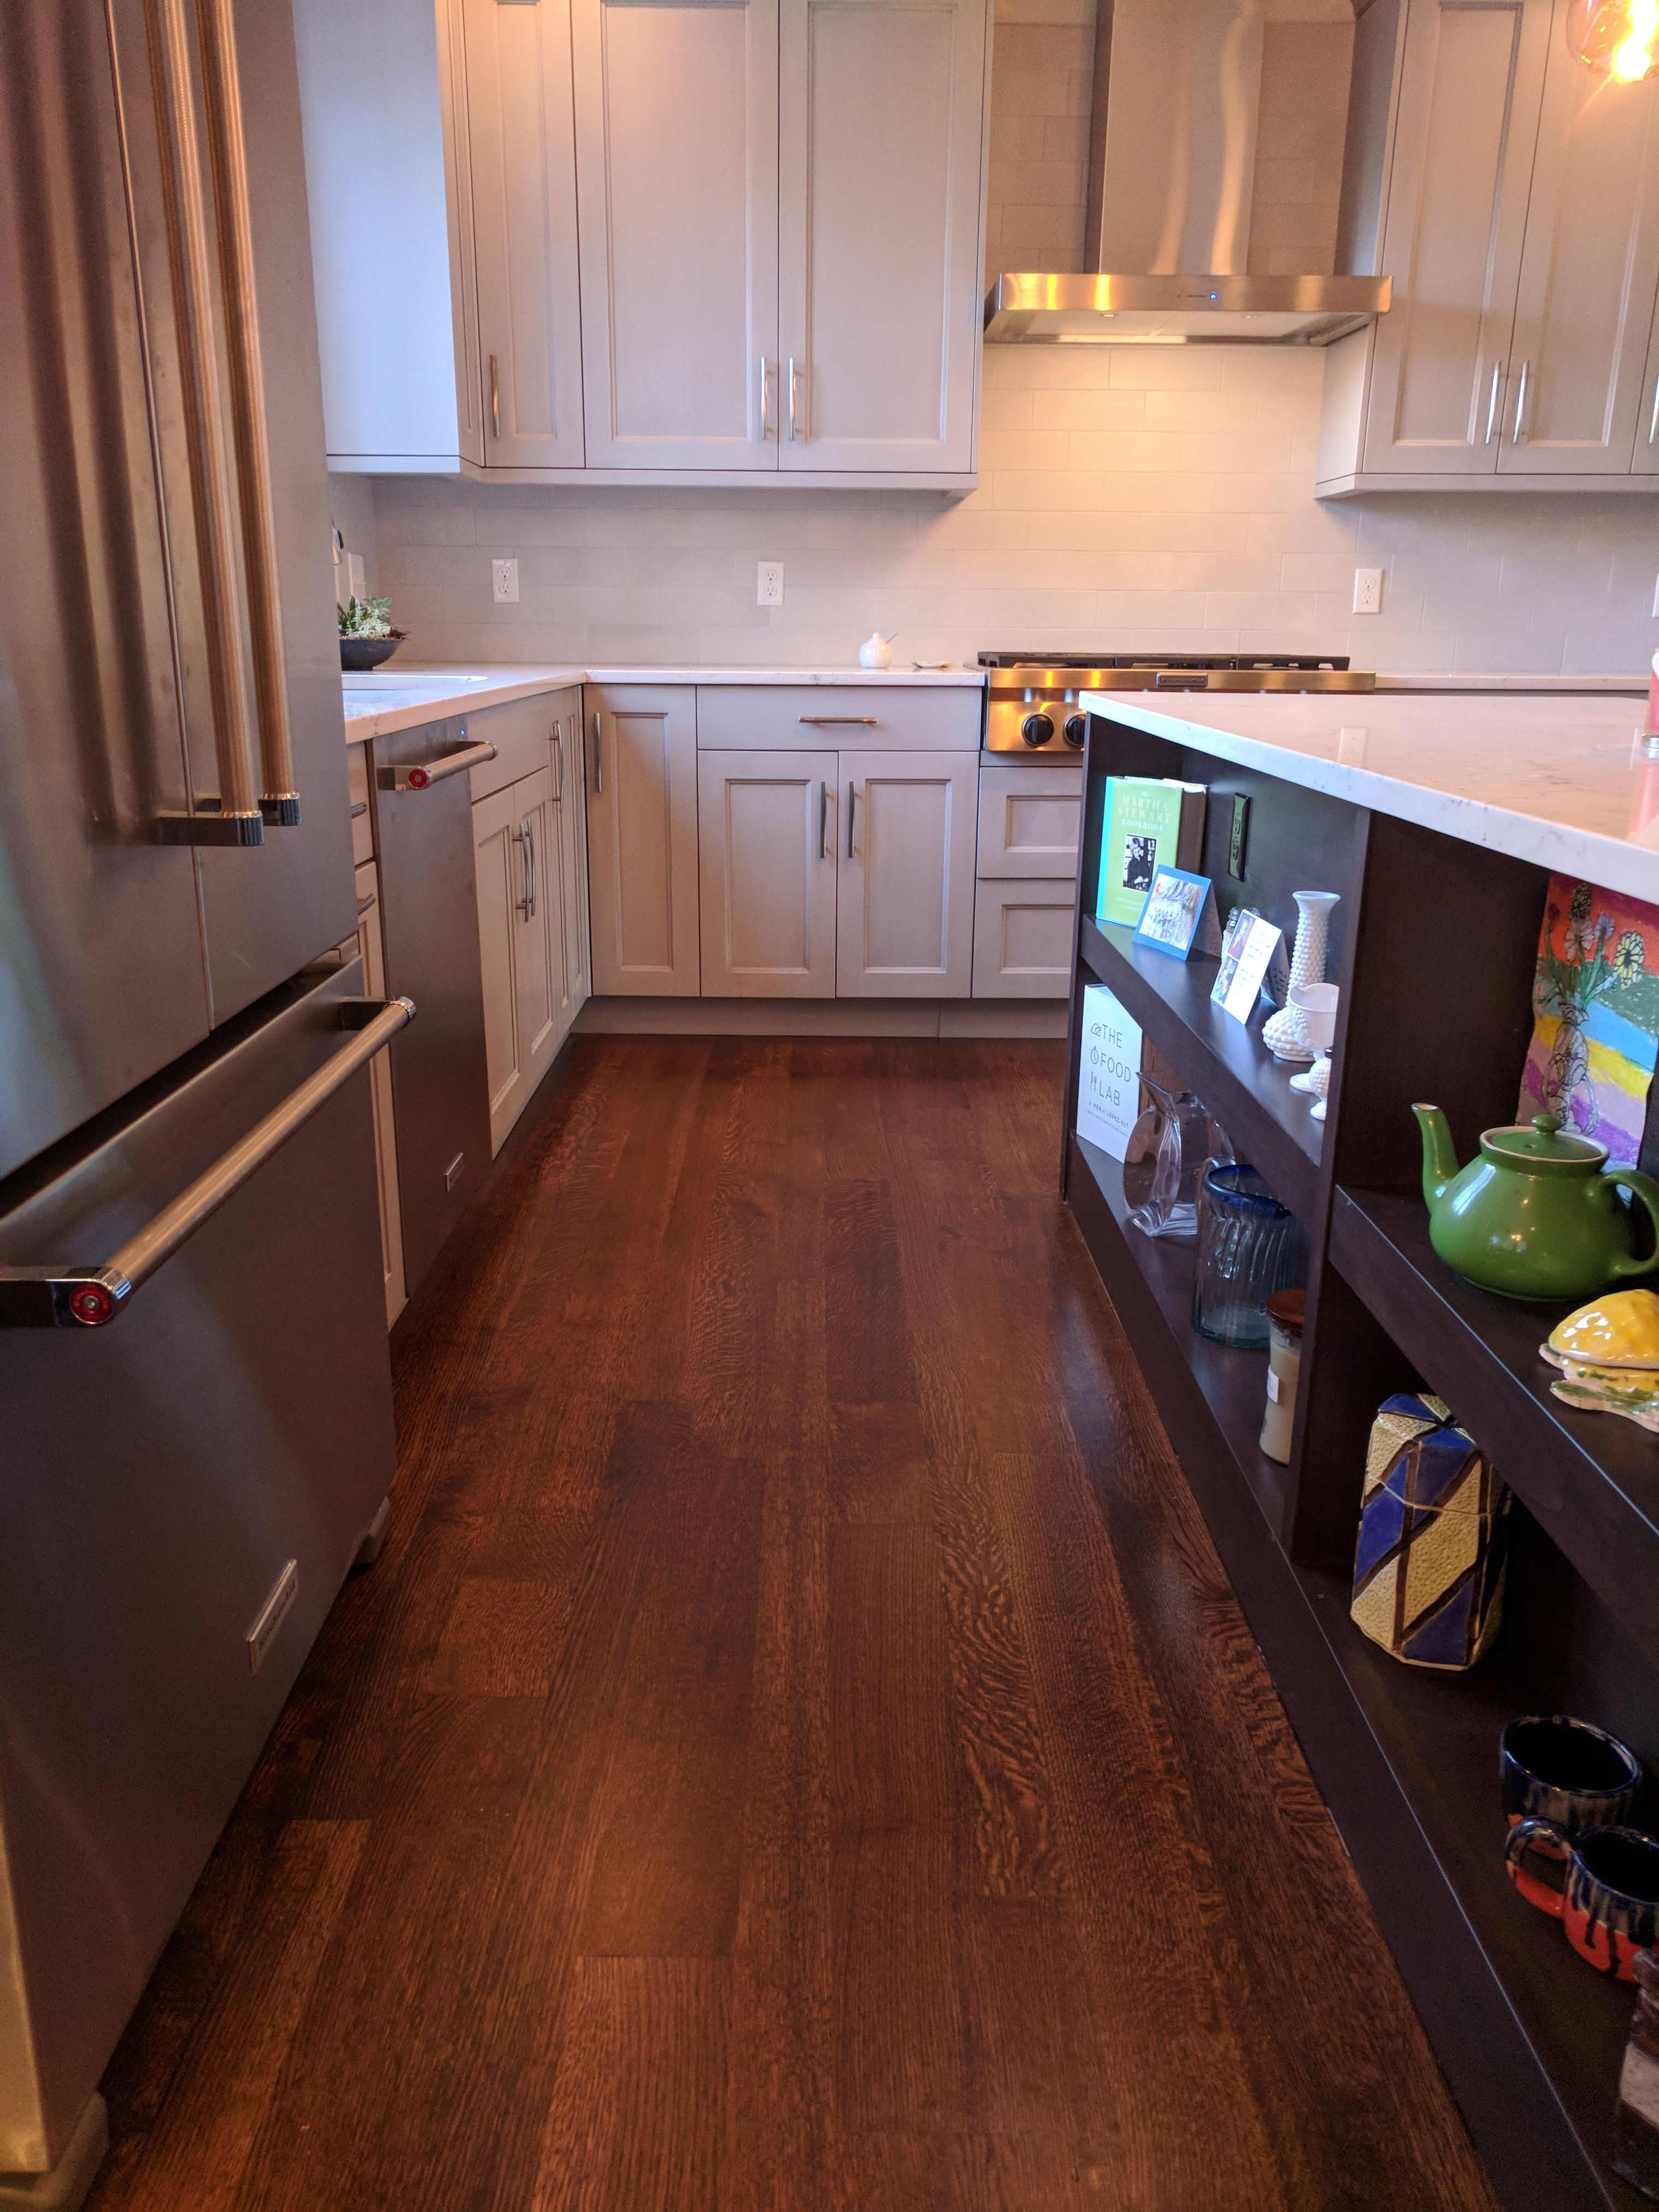 Stained White Oak Floors In Newly Remodeled Kitchen